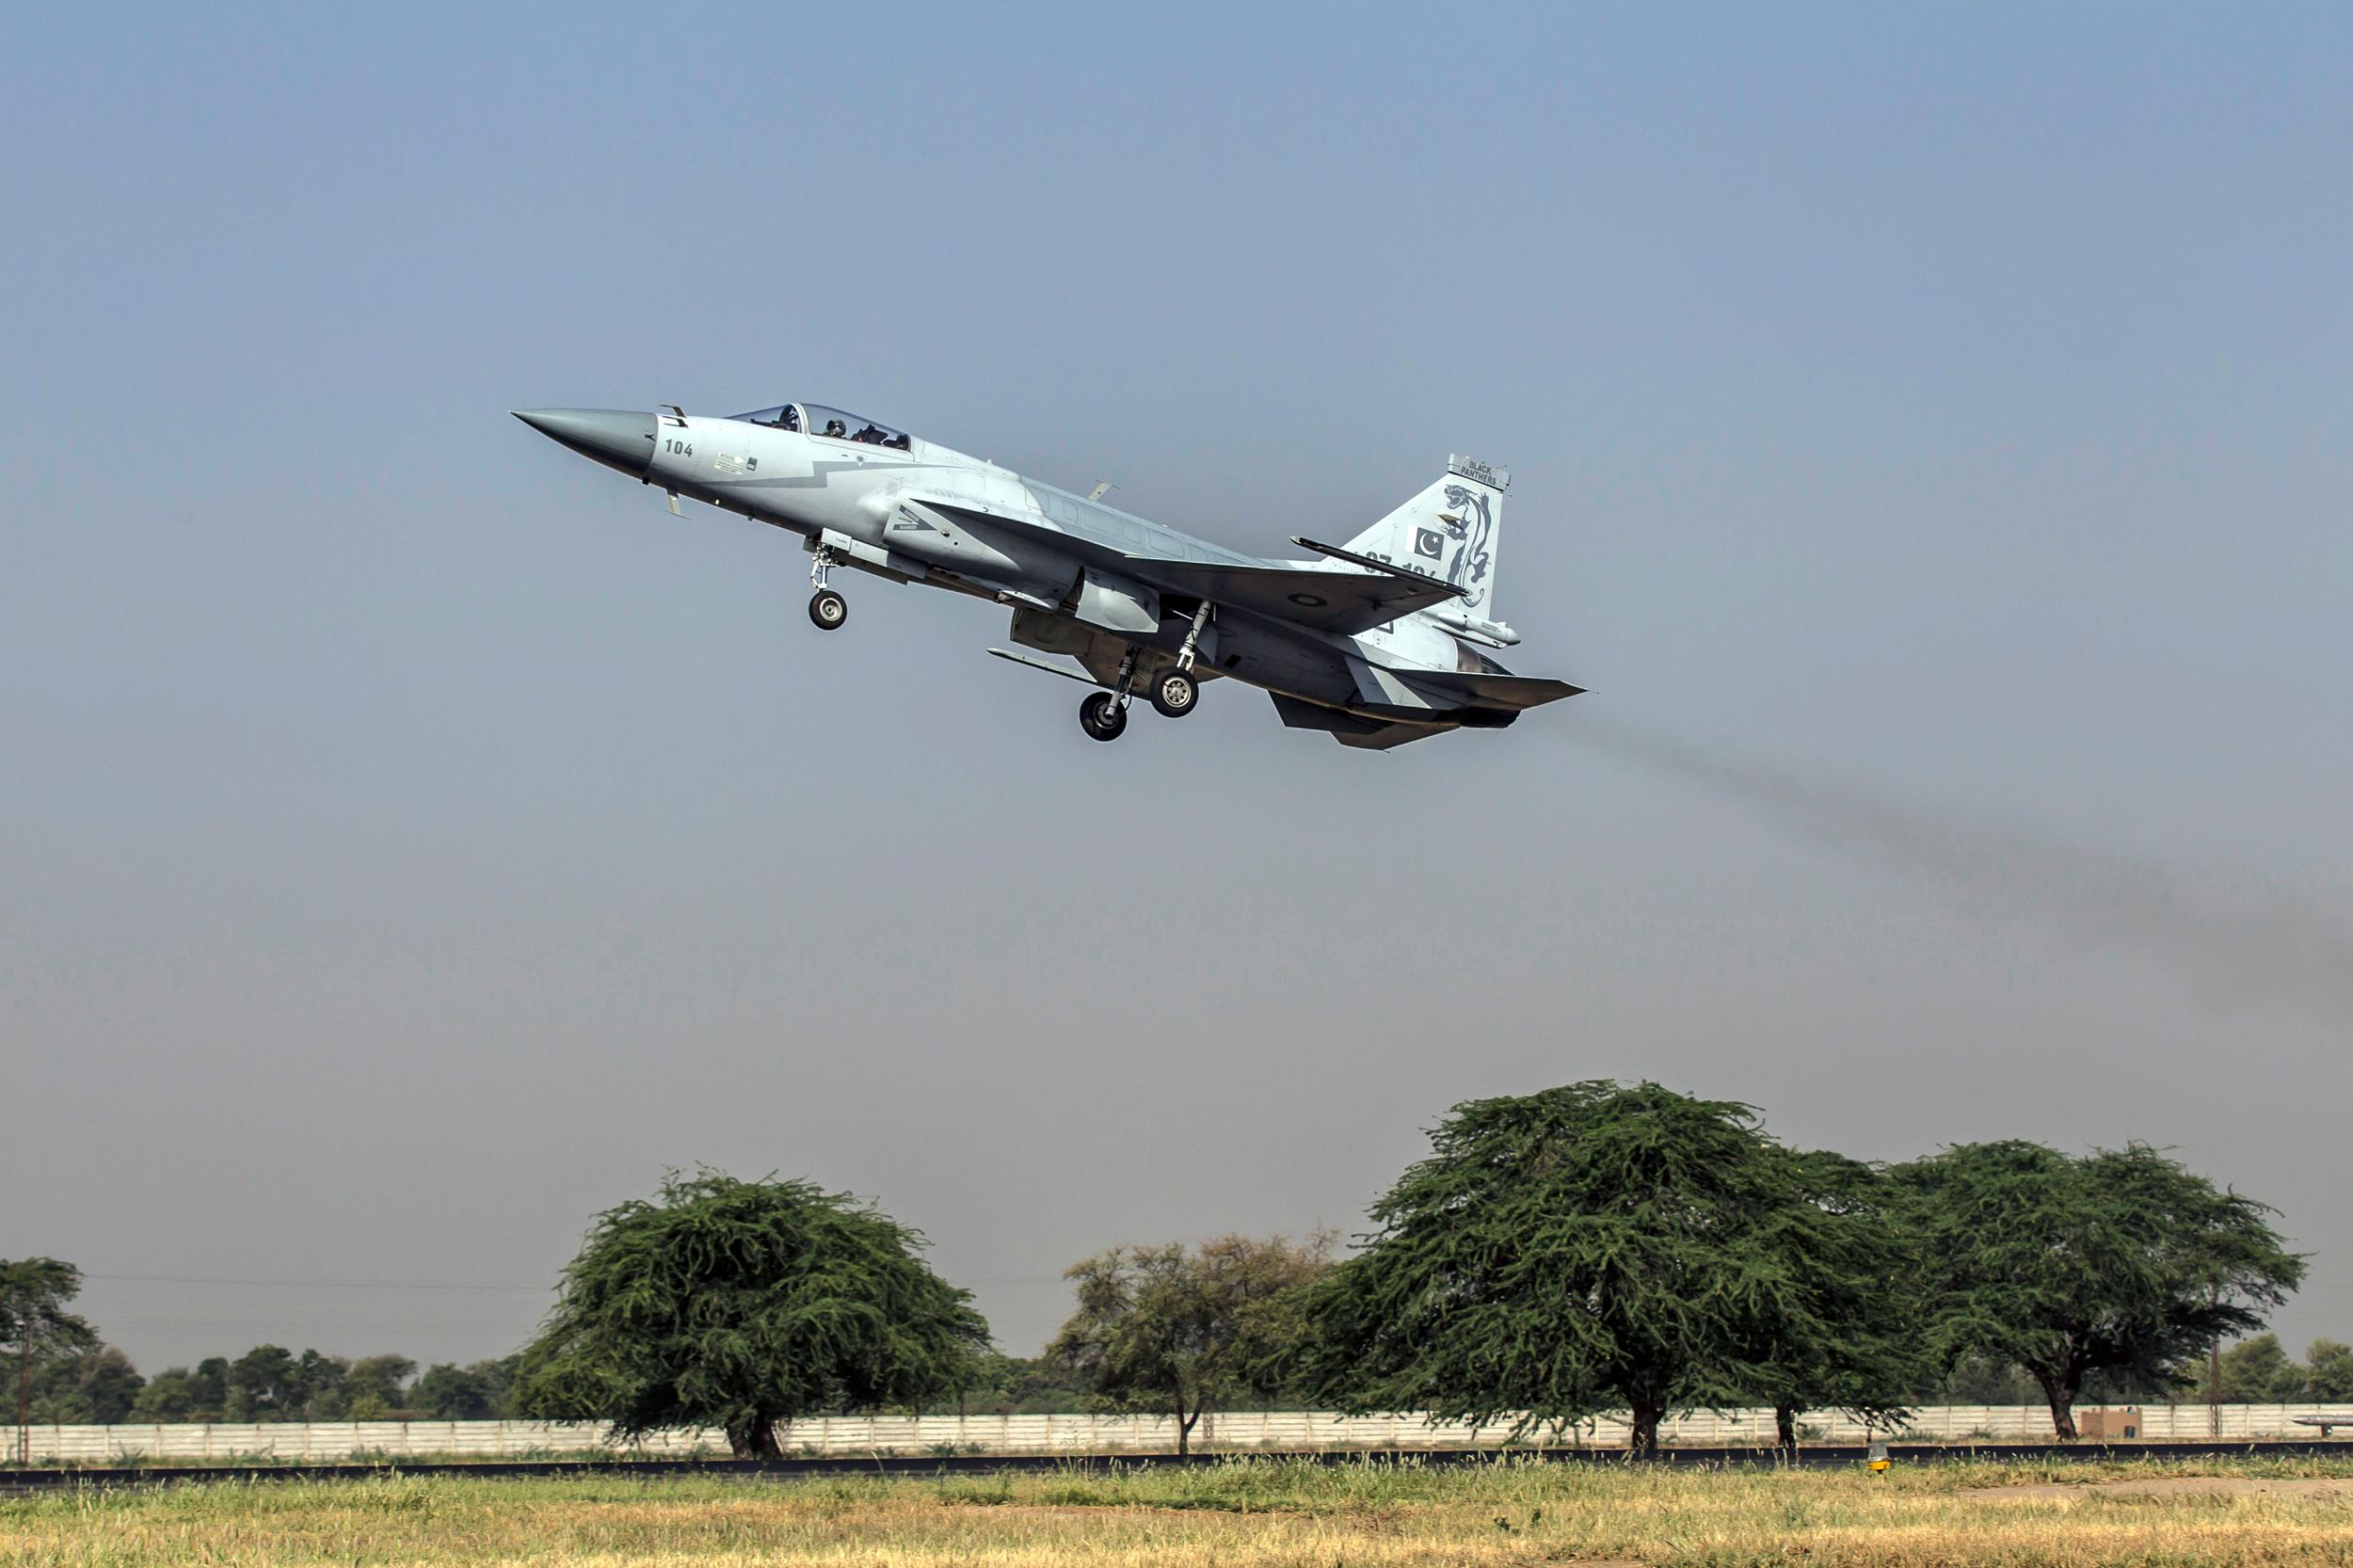 A JF-17 Thunder fighter jet of the Pakistan Air Force takes off from Mushaf base in Sargodha